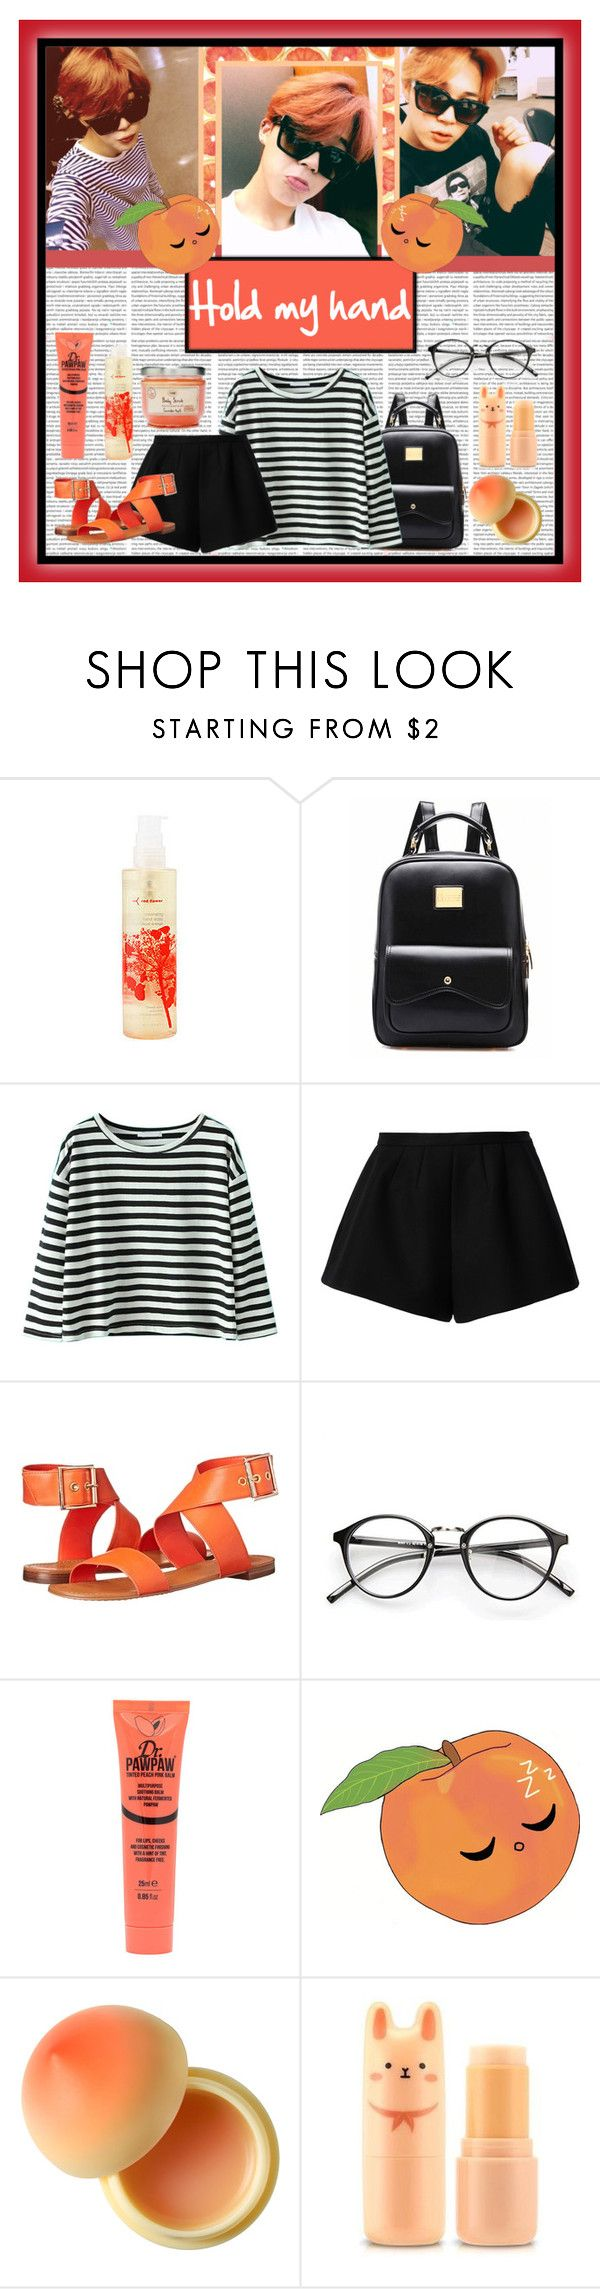 """#213 - Jimin"" by bangtan-life ❤ liked on Polyvore featuring red flower, RED Valentino, Vince Camuto, Dr. Paw Paw, Tony Moly, kpop, bts, BangtanBoys and jimin"